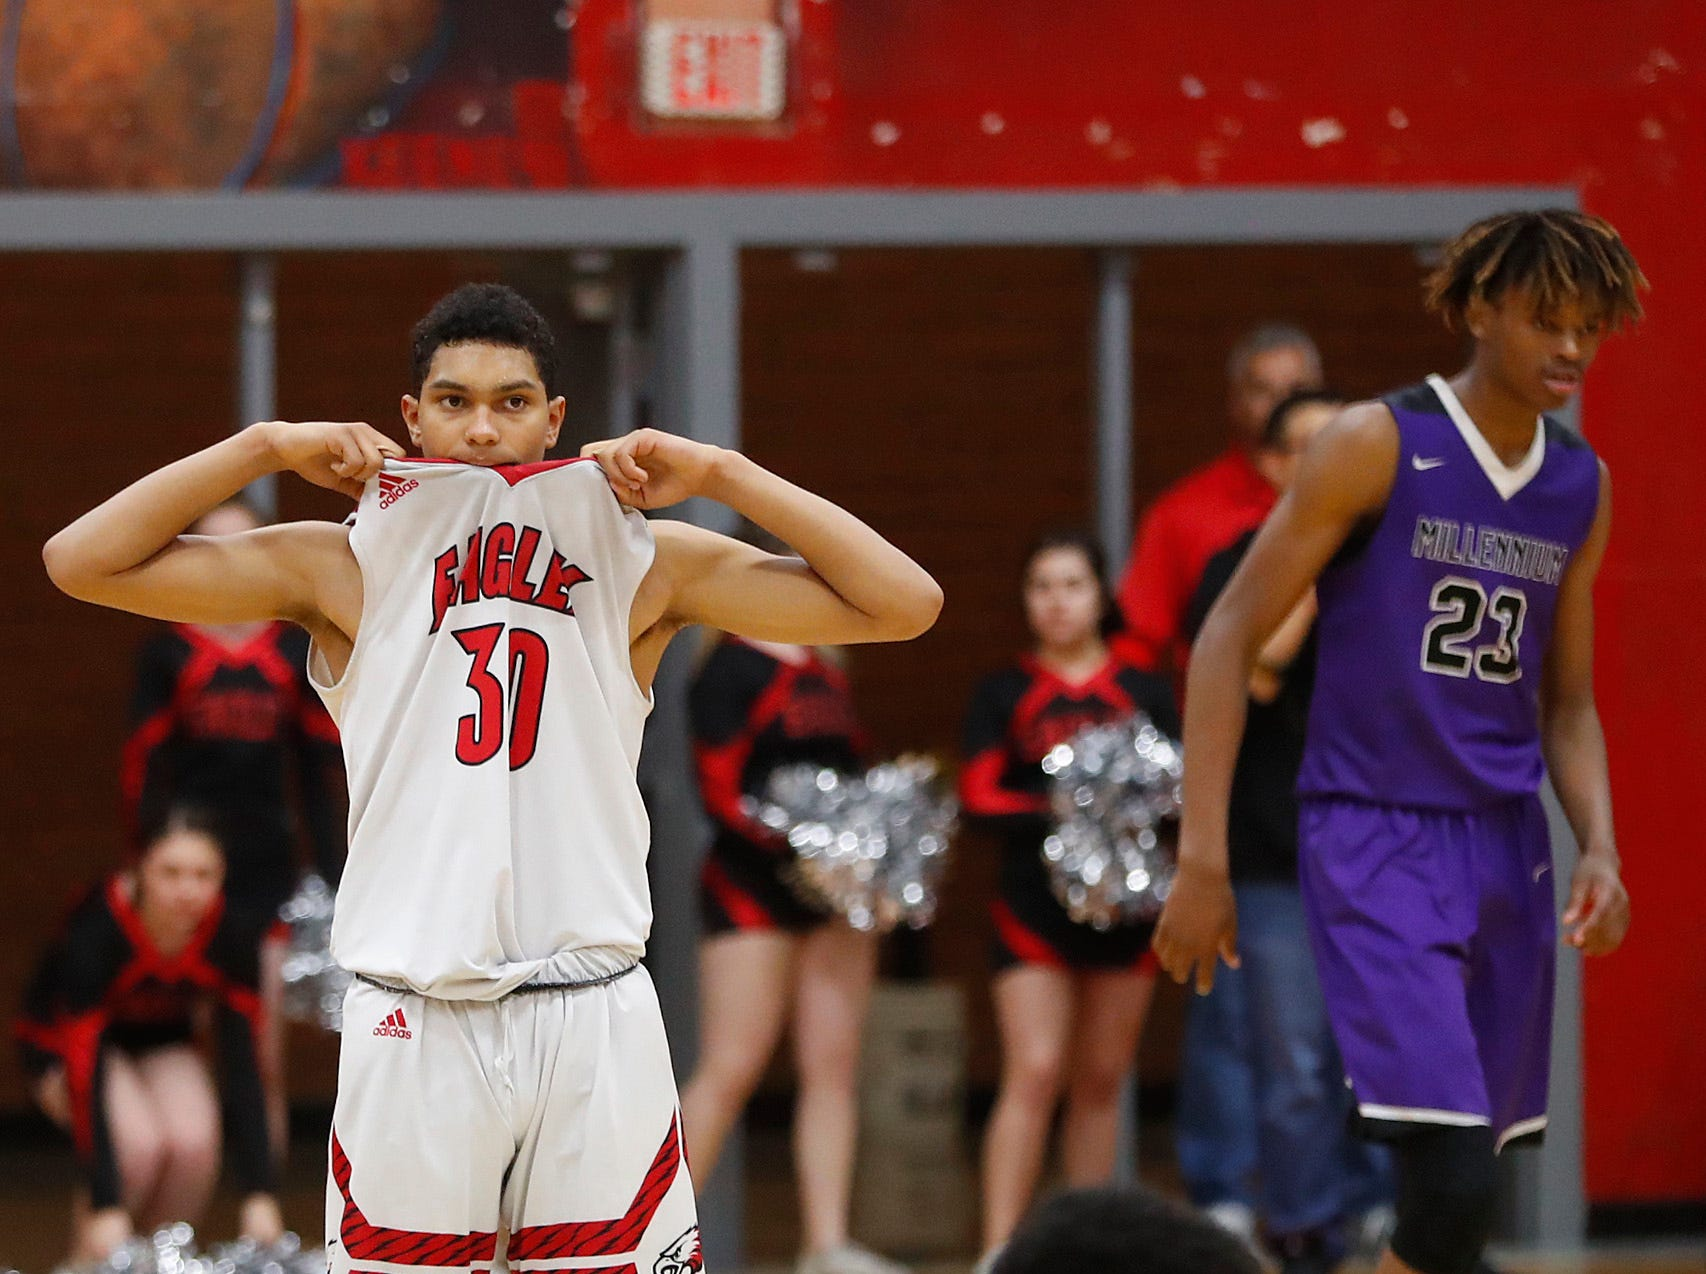 Ironwood's JJ White (30) and Malik Smith (1) pull the jersey up after realizing a call for a lane violation during the second half of the 5A state quarterfinal game against Millennium at Ironwood High School in Glendale, Ariz. on February 15, 2019.